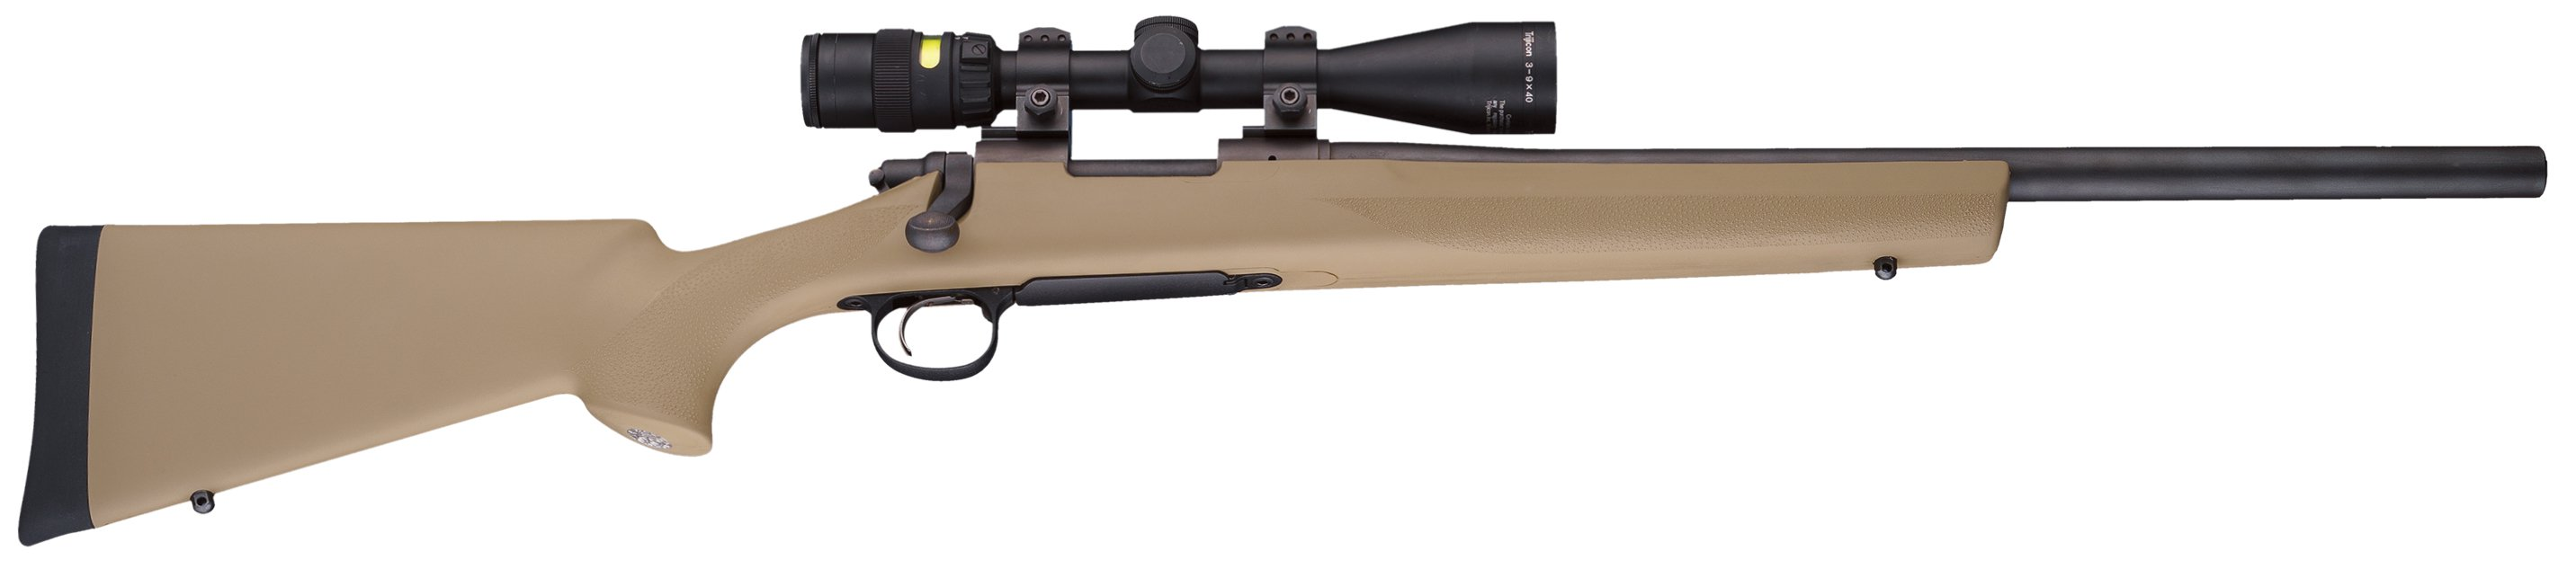 HOGUE INC Expands Rifle Stock Line: More FLAT DARK EARTH